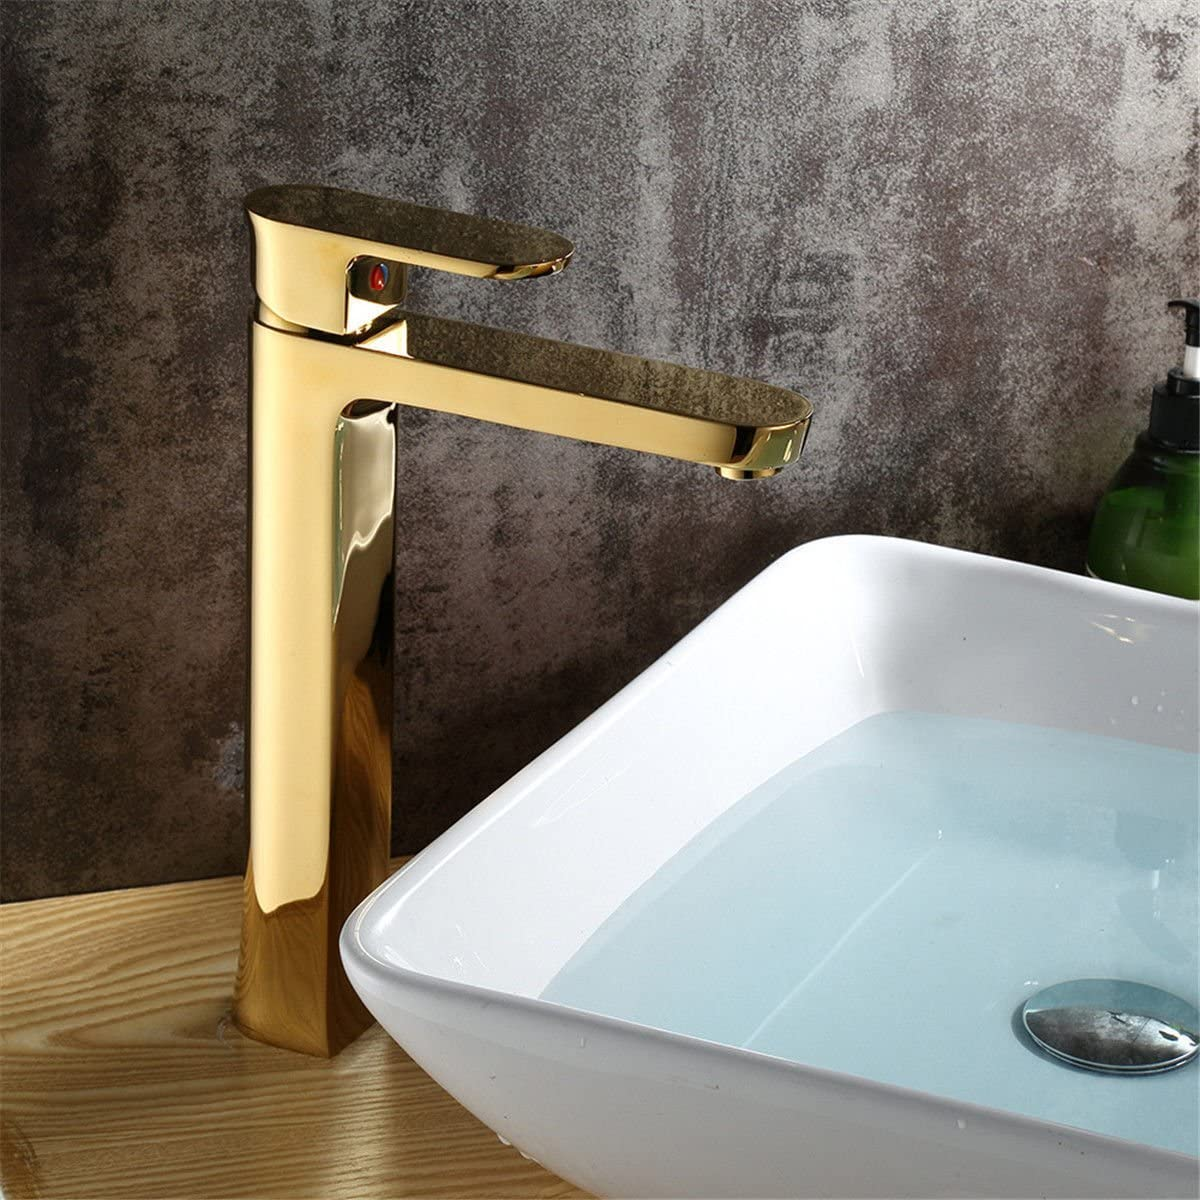 Kitchen Faucet Commercial Solid Brass Cold Gold Bathroom Kitchen Sink Basin Mixer Tap Bathroom Sink Vessel Bathroom Faucet Bathroom Faucet Sink Basin Mixer Tap Hot and Cold